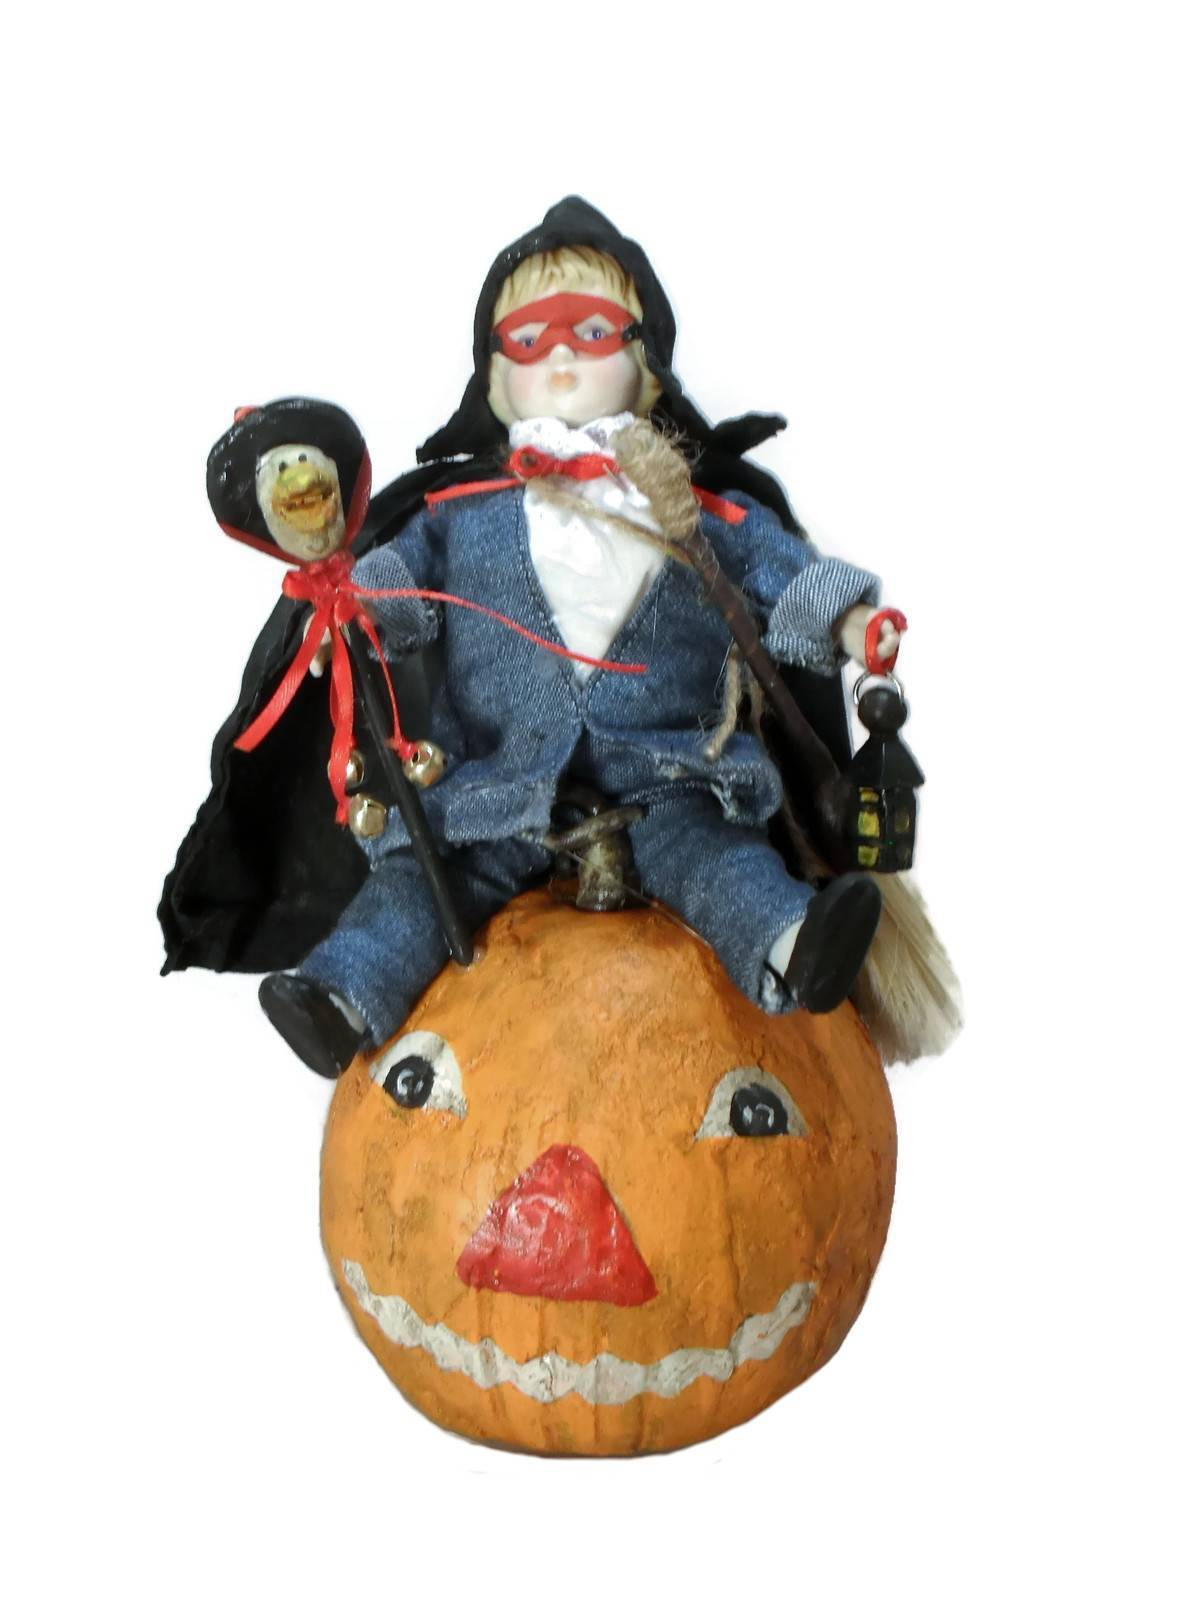 Vintage Reproduction Halloween Trick Or Treater Figurine Collectible